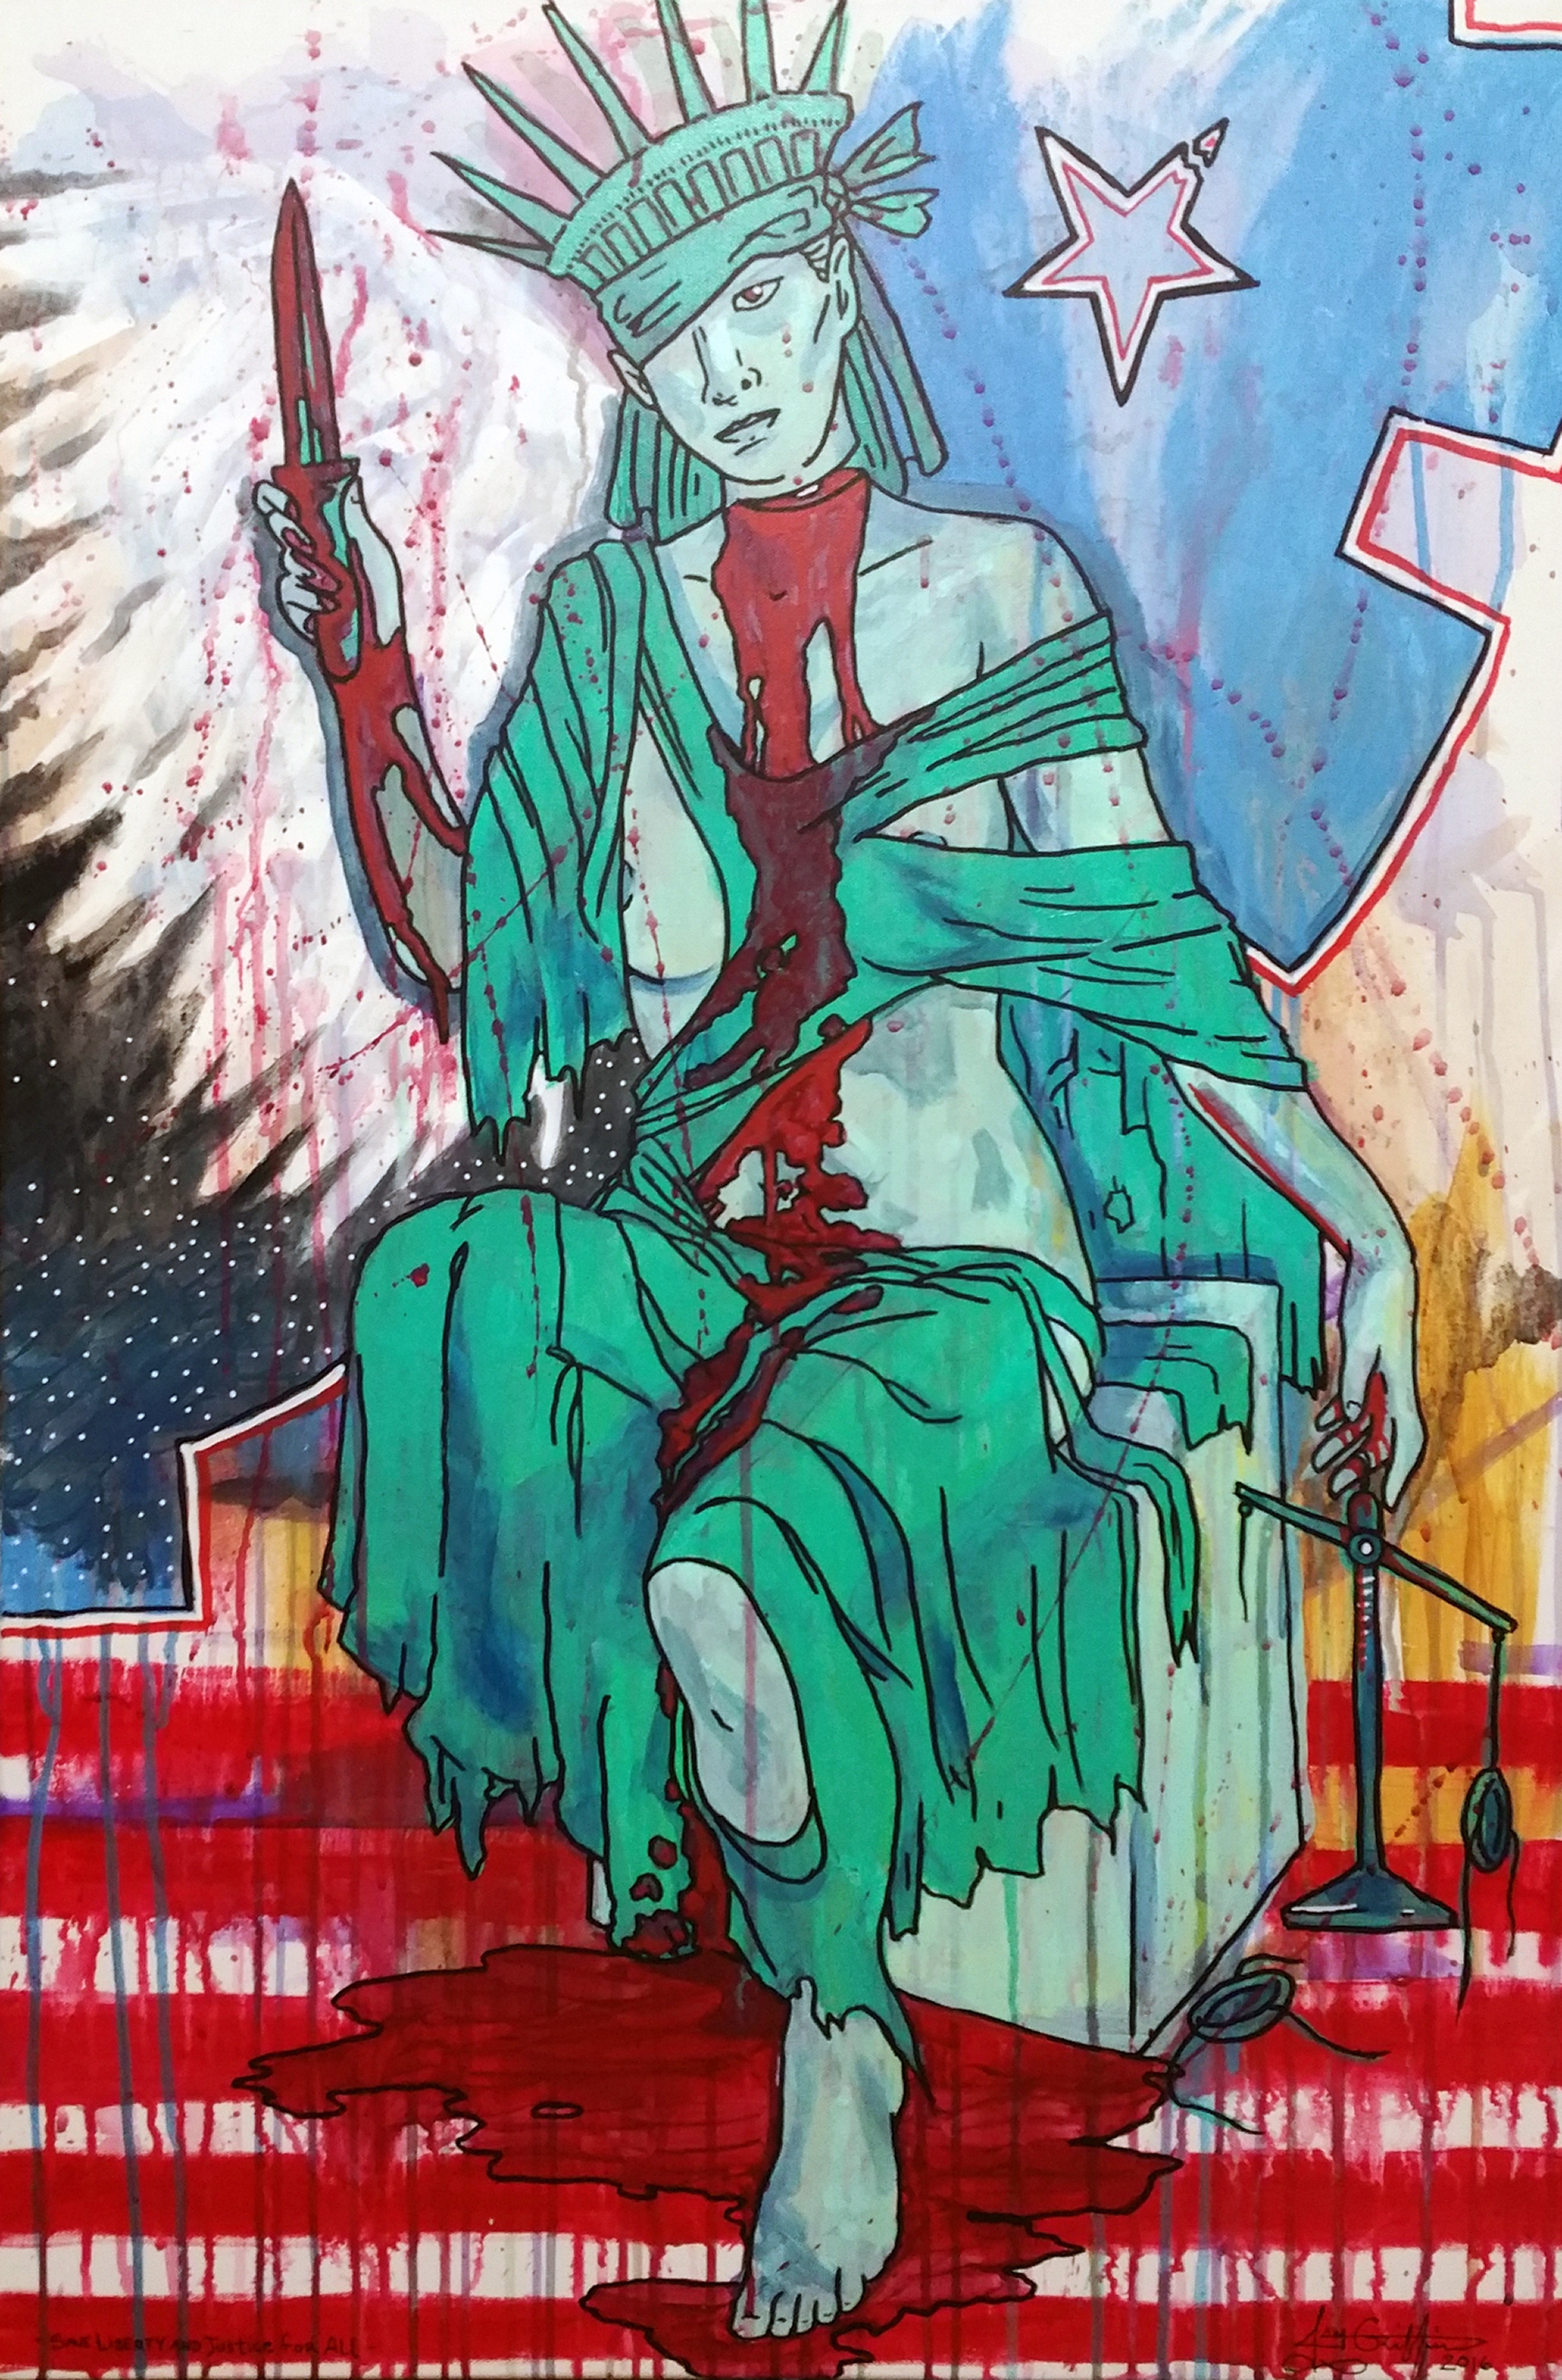 Justice For Liberty sold